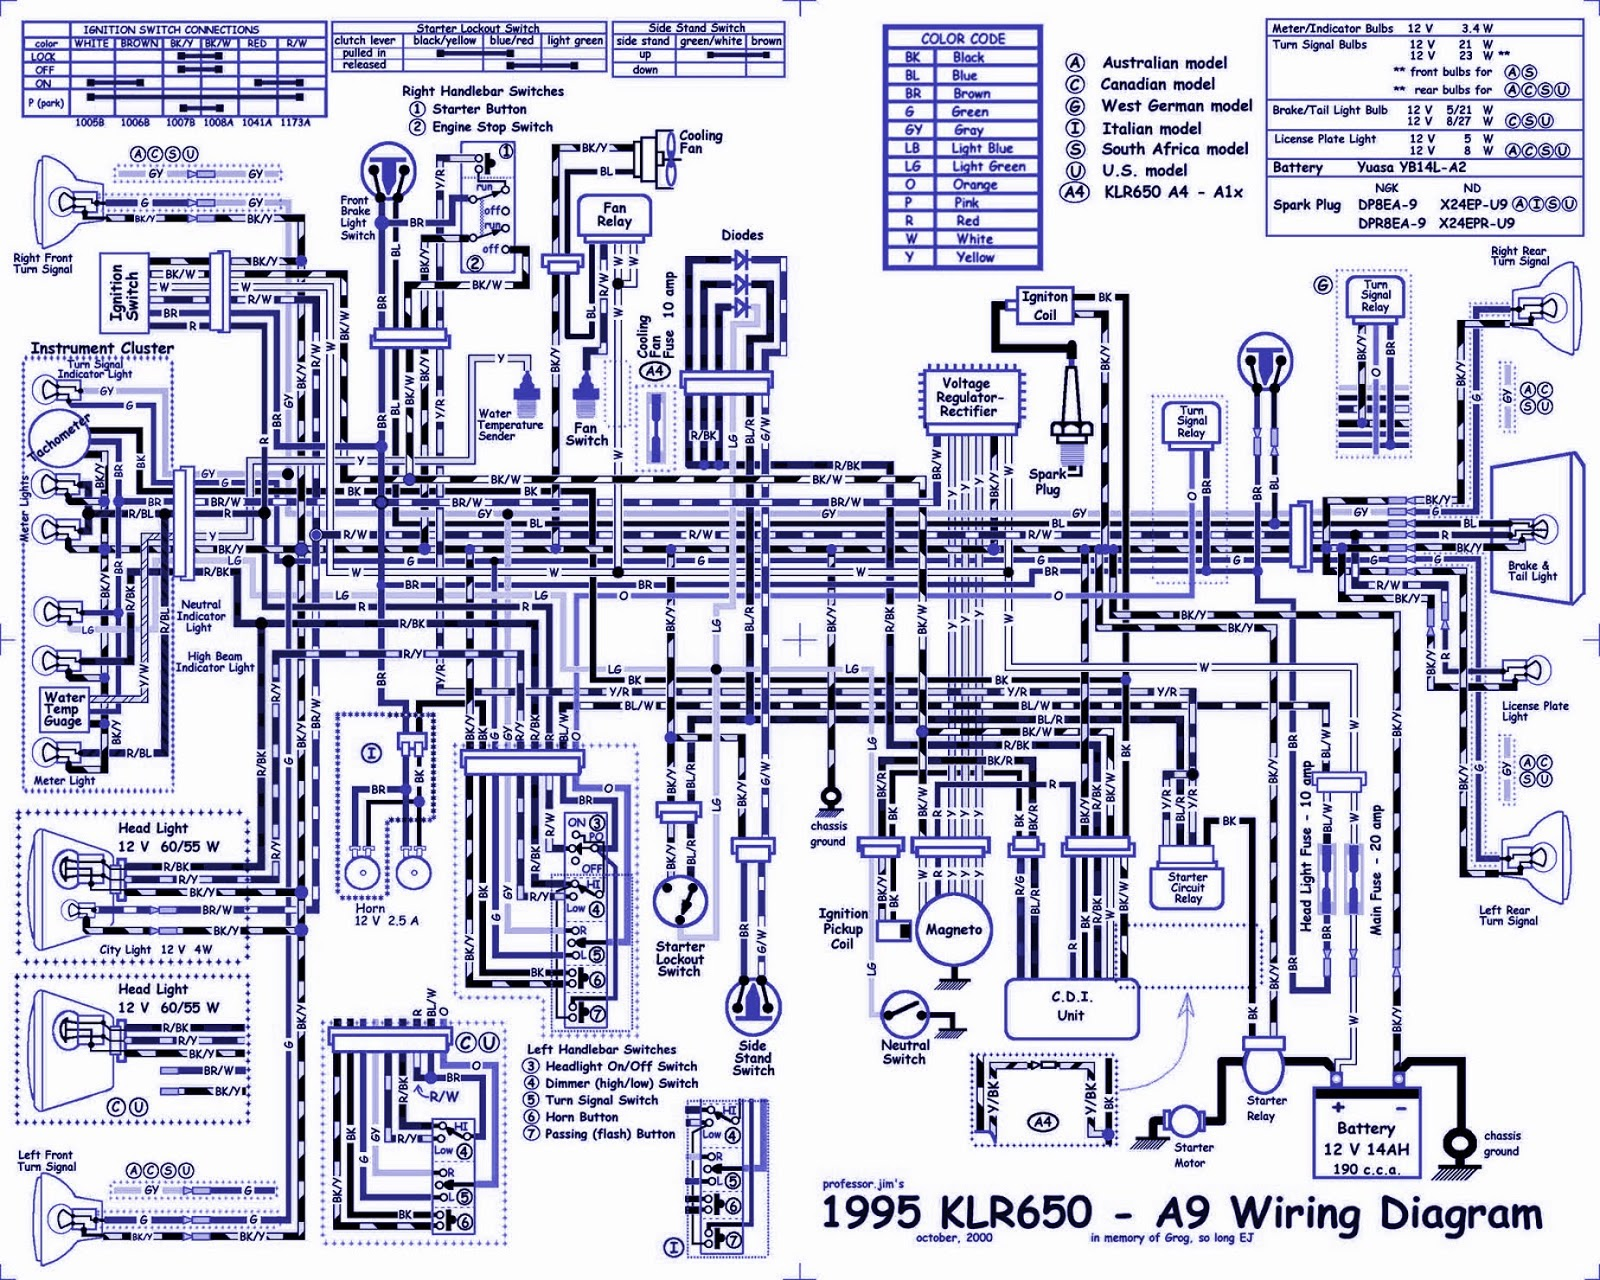 wiring diagram old bussmann fuse panel wiring discover your home fuse box wiring diagram nilza